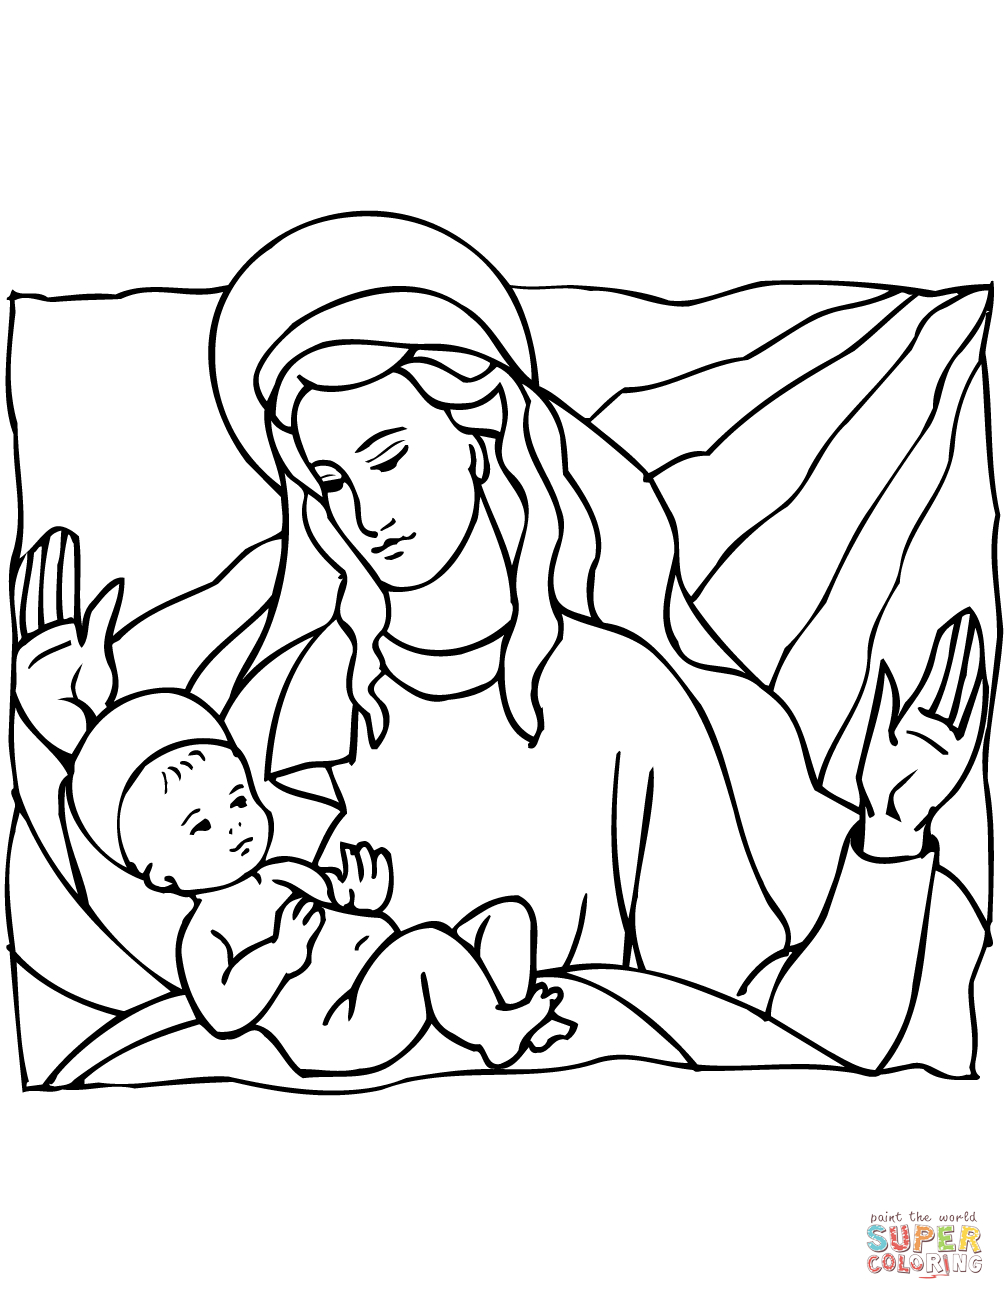 Mary And Baby Jesus Coloring Page   Free Printable Coloring Pages - Free Printable Christmas Baby Jesus Coloring Pages